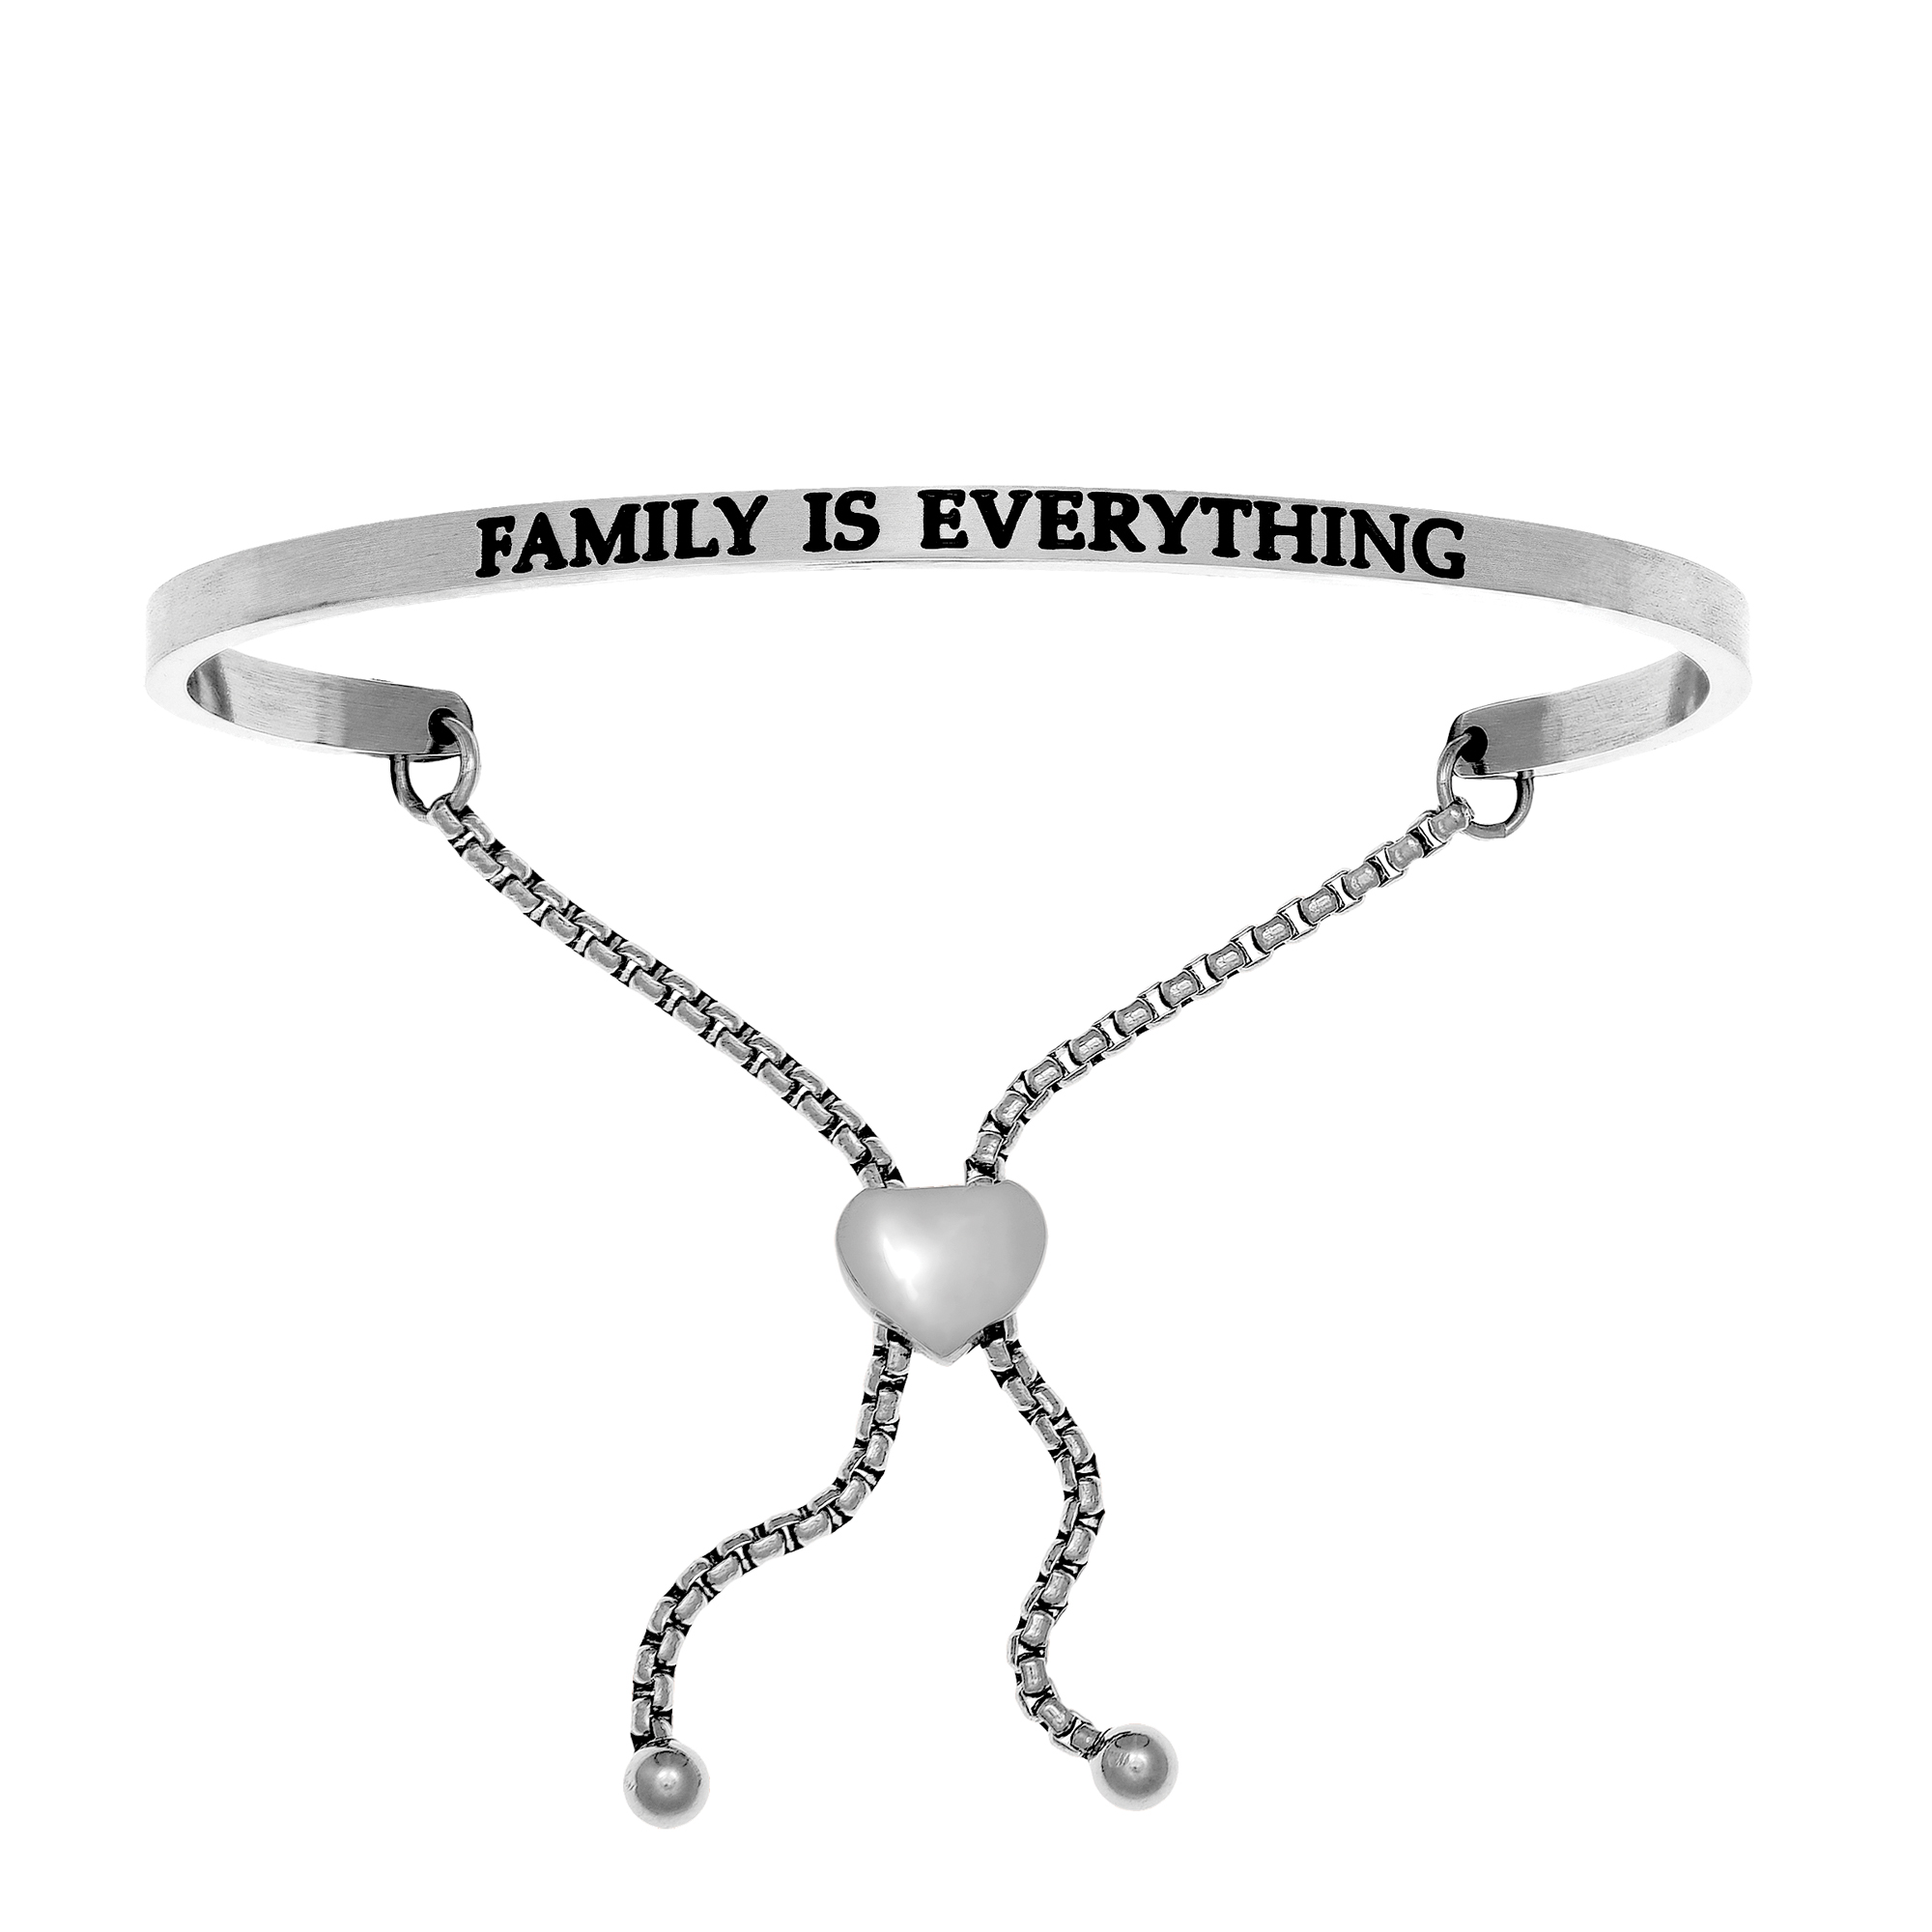 Intuitions Stainless Steel FAMILY IS EVERYTHING Diamond Accent Adjustable Bracelet Each of these bracelets carries a personal message of inspiration, spirituality or just plain fun. Meant to be worn alone or stacked together for a smart, contemporary look, they're a great self-purchase or as a gift for family or friends. Intuitions are made of stainless steel and come in two styles standard cuff or friendship and fit practically any wrist. Intuitions Jewelry makes the difference in your daily life by designing and creating bracelets and bangles with motivational quotes to inspire you and your loved ones. Giving back $.25 of each bracelet to BABY2BABY